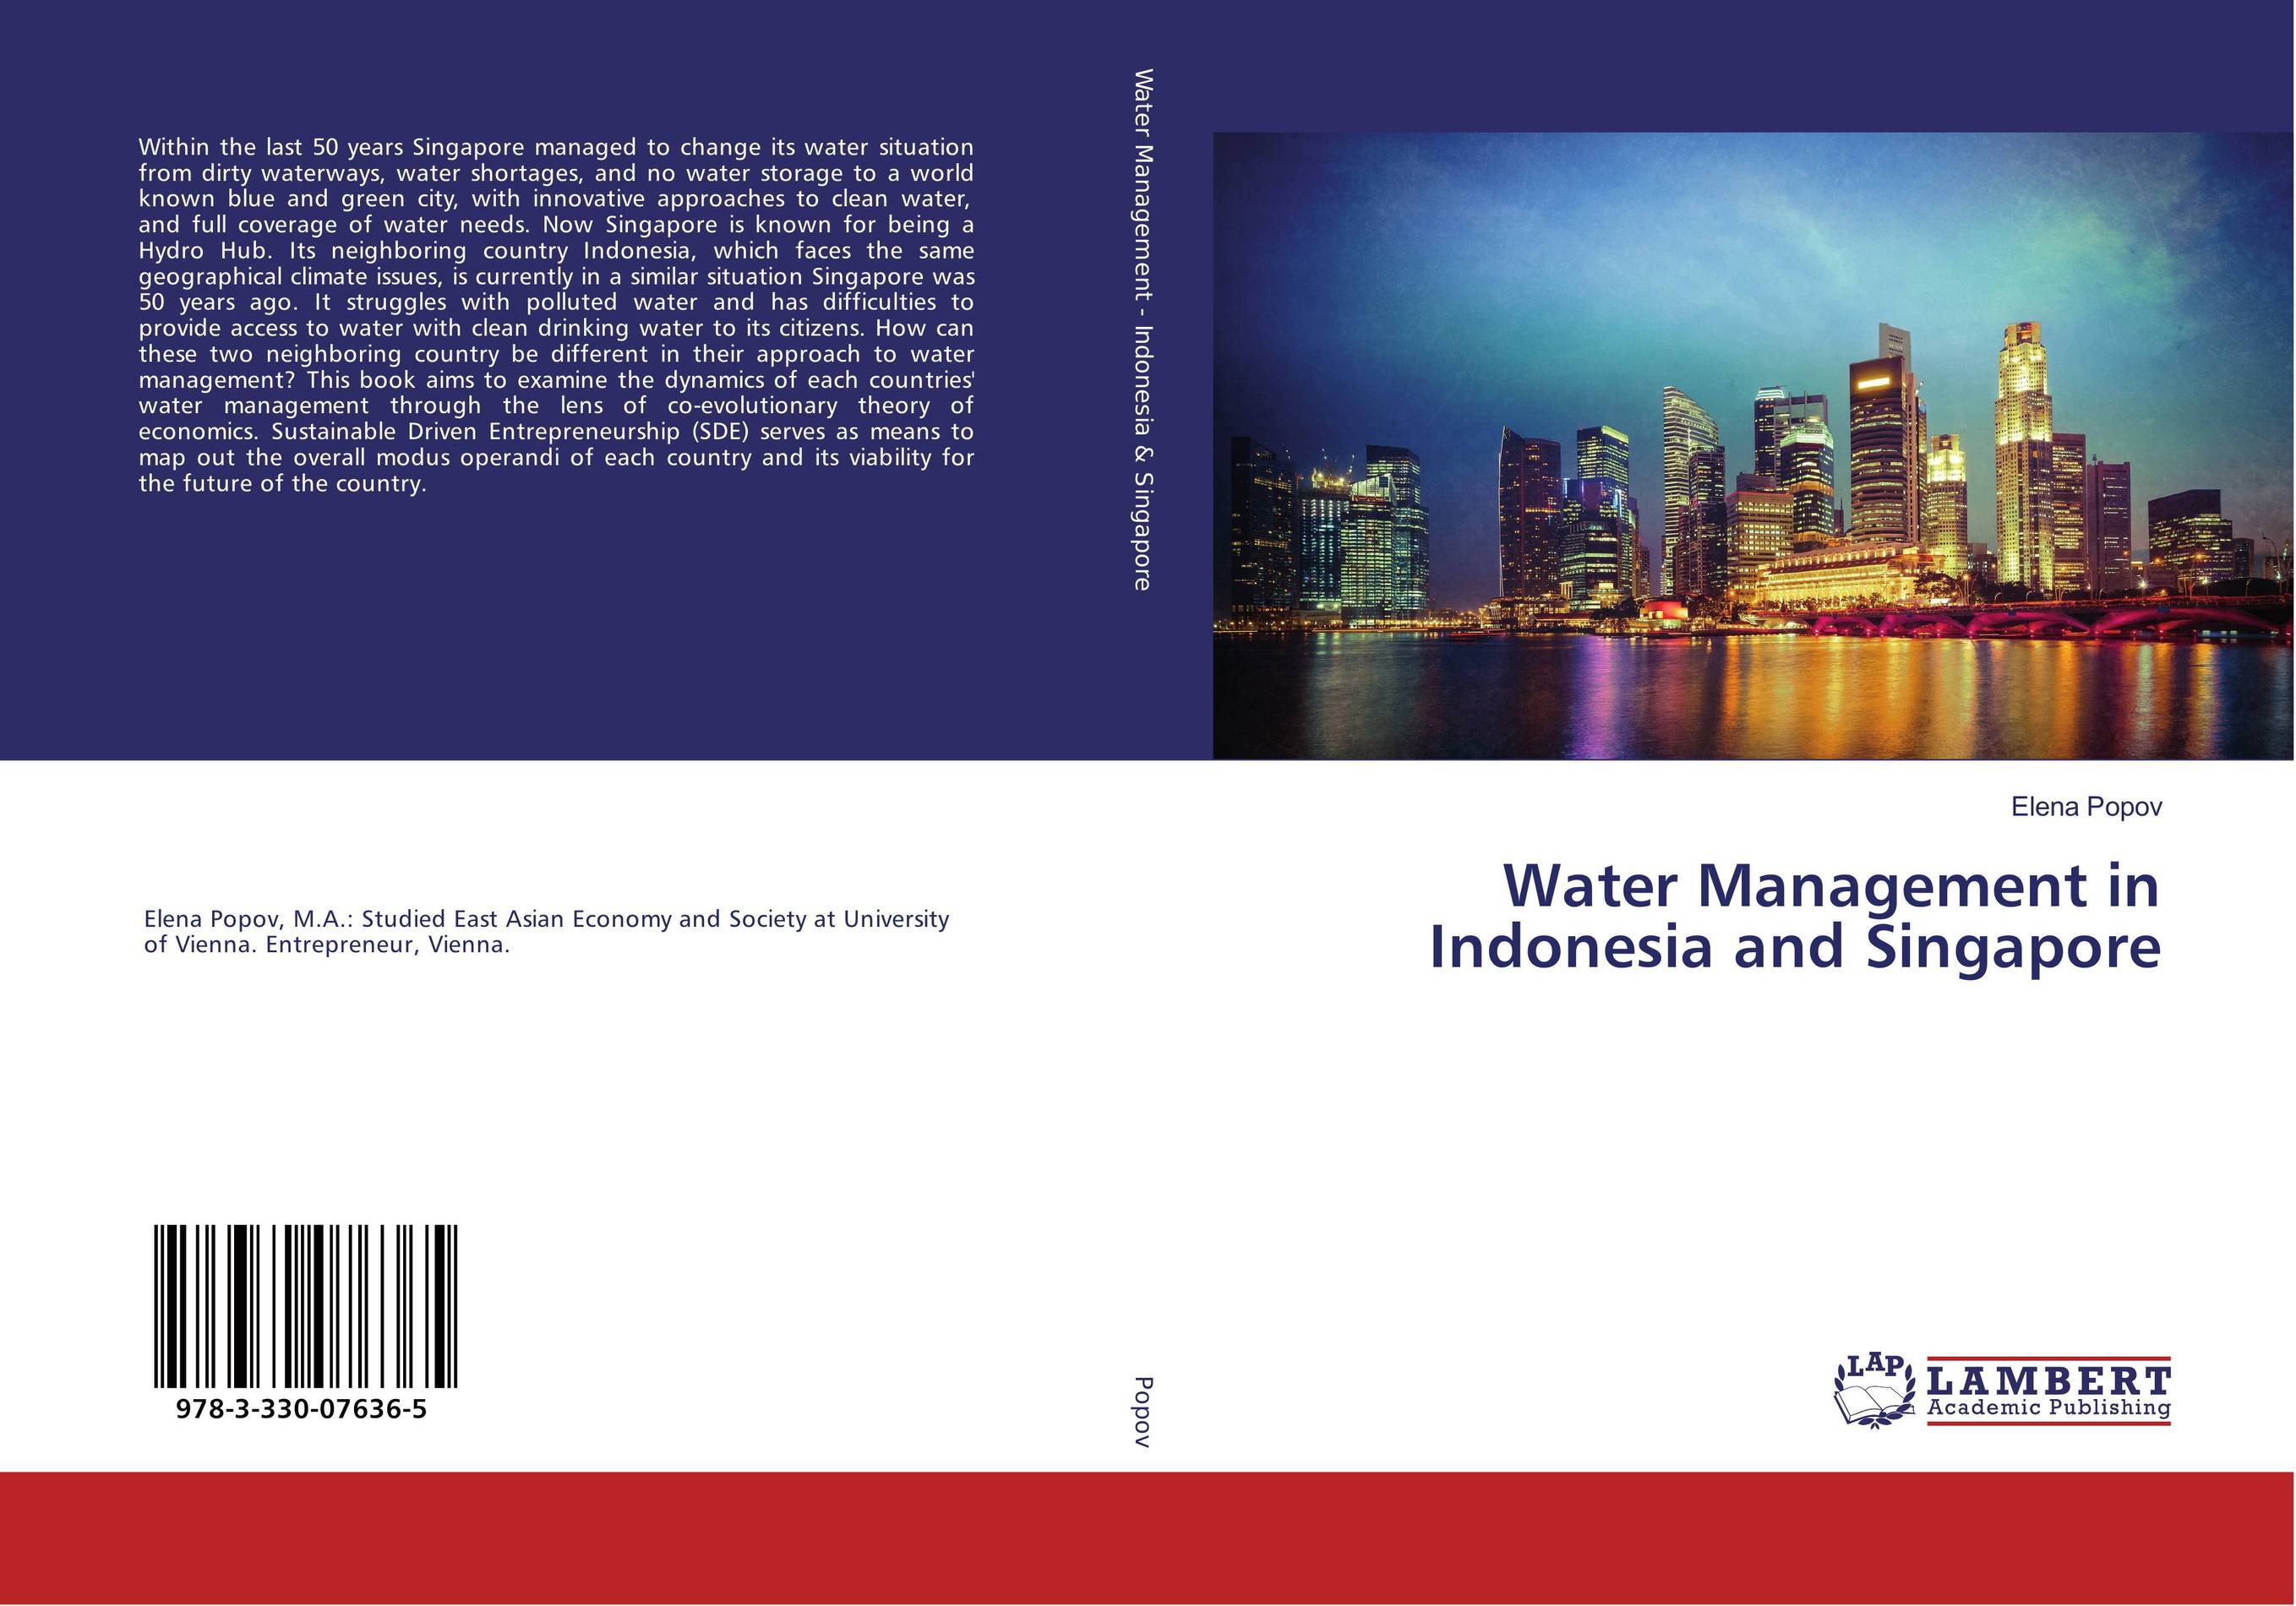 9783330076365 Water Management in Indonesia and Singapore Elena Popov